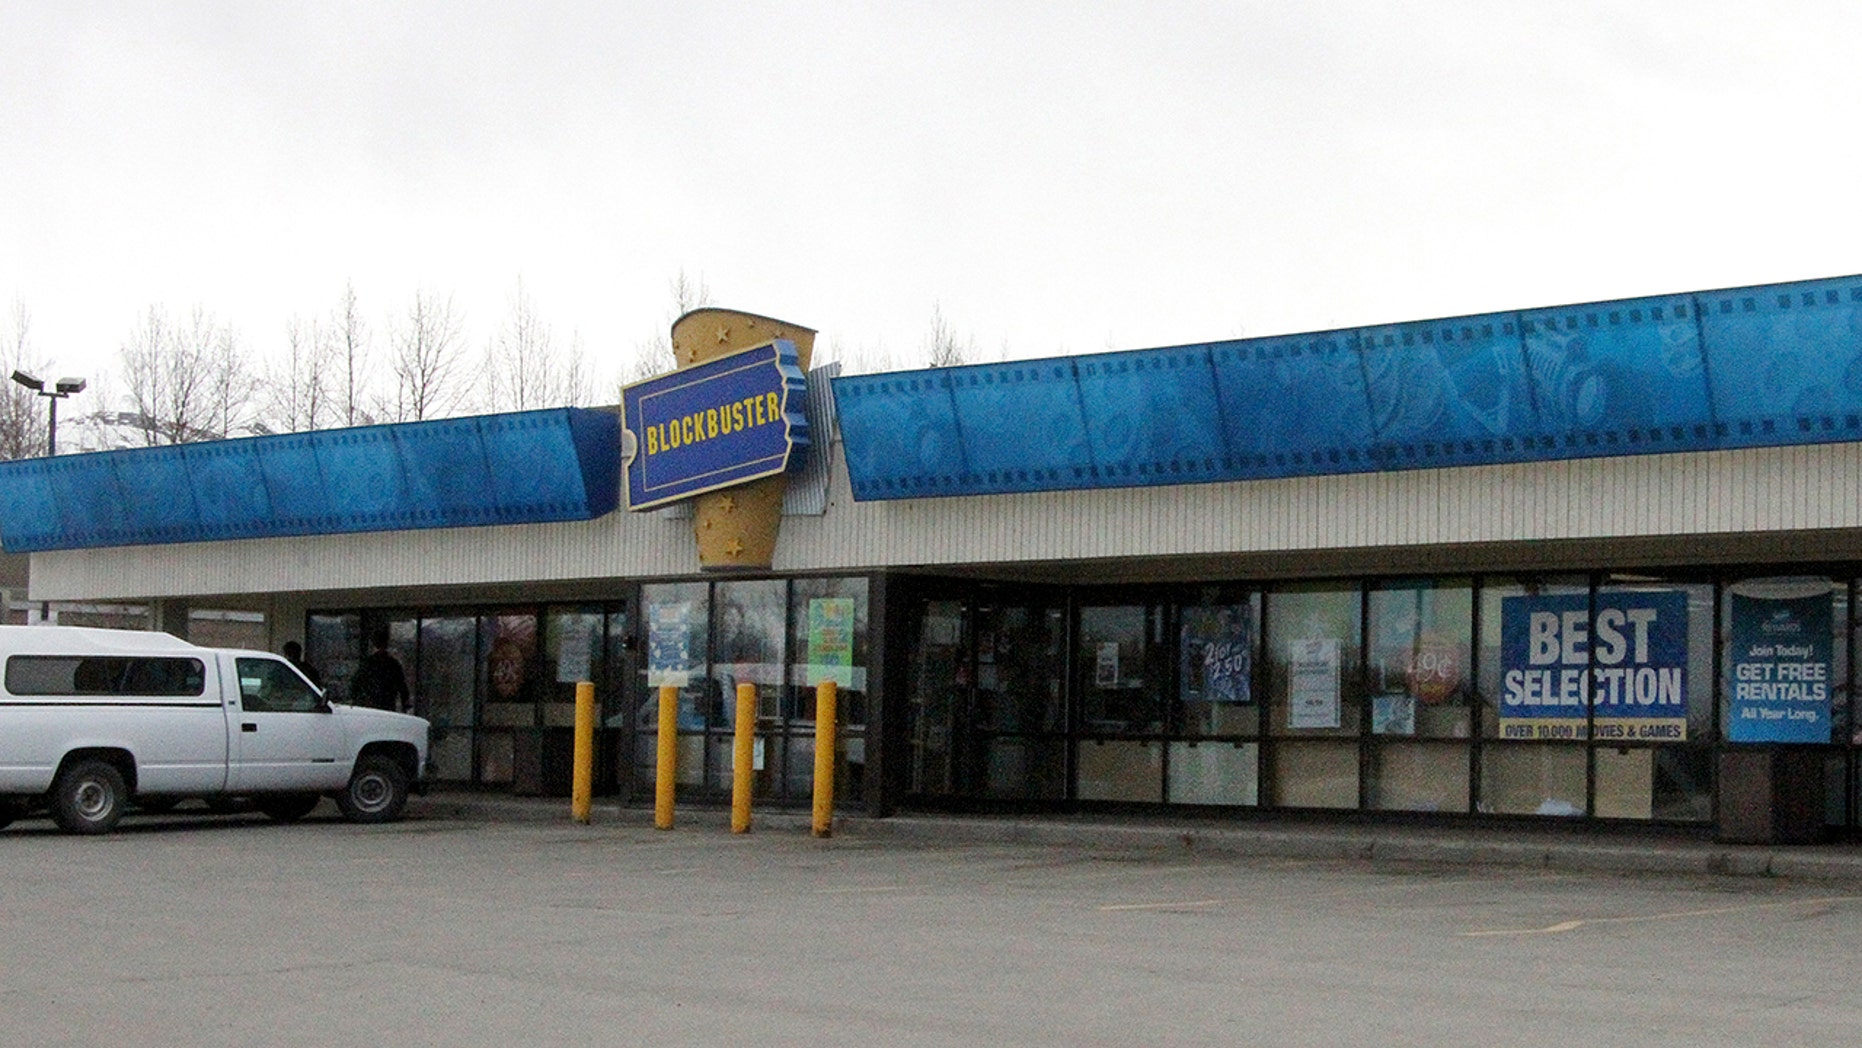 Alaska's last two Blockbuster video rental stores will close this week and liquidate remaining inventory, the stores' management announced Thursday. With the closure of the Alaska location, only a single store will remain in the U.S.